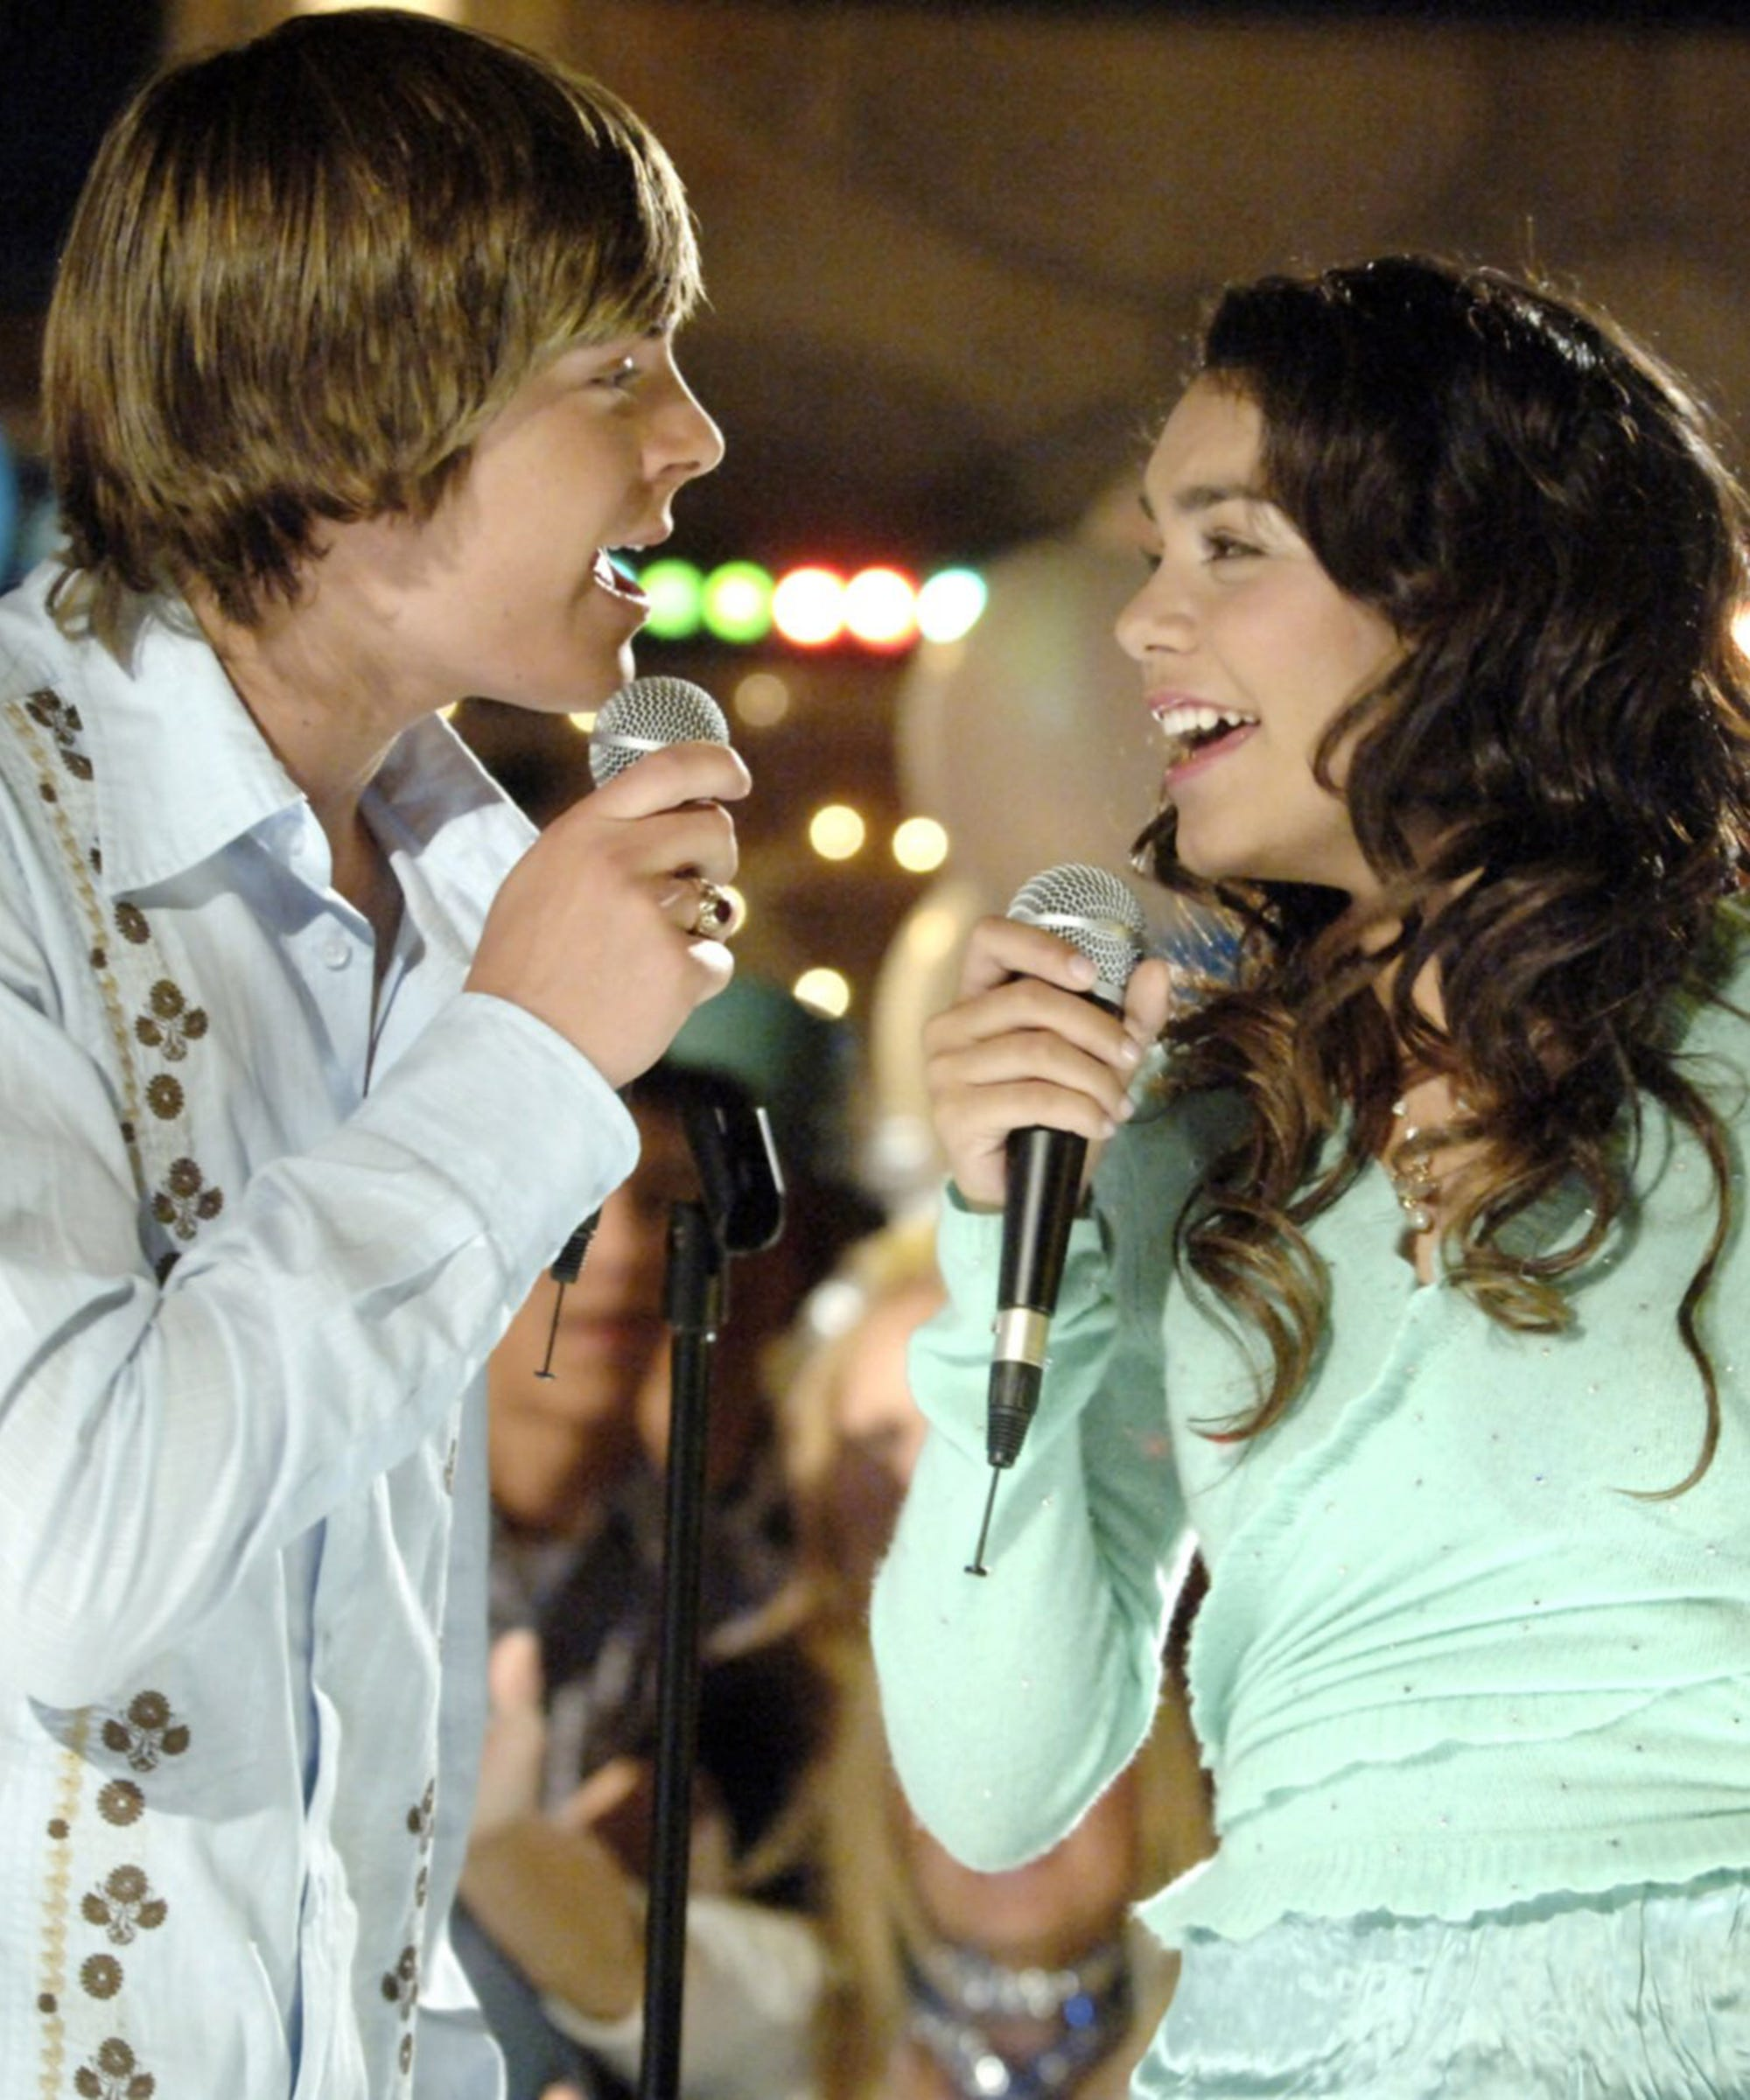 Vanessa Hudgens Gushes About Her HSM Romance With Zac Efron